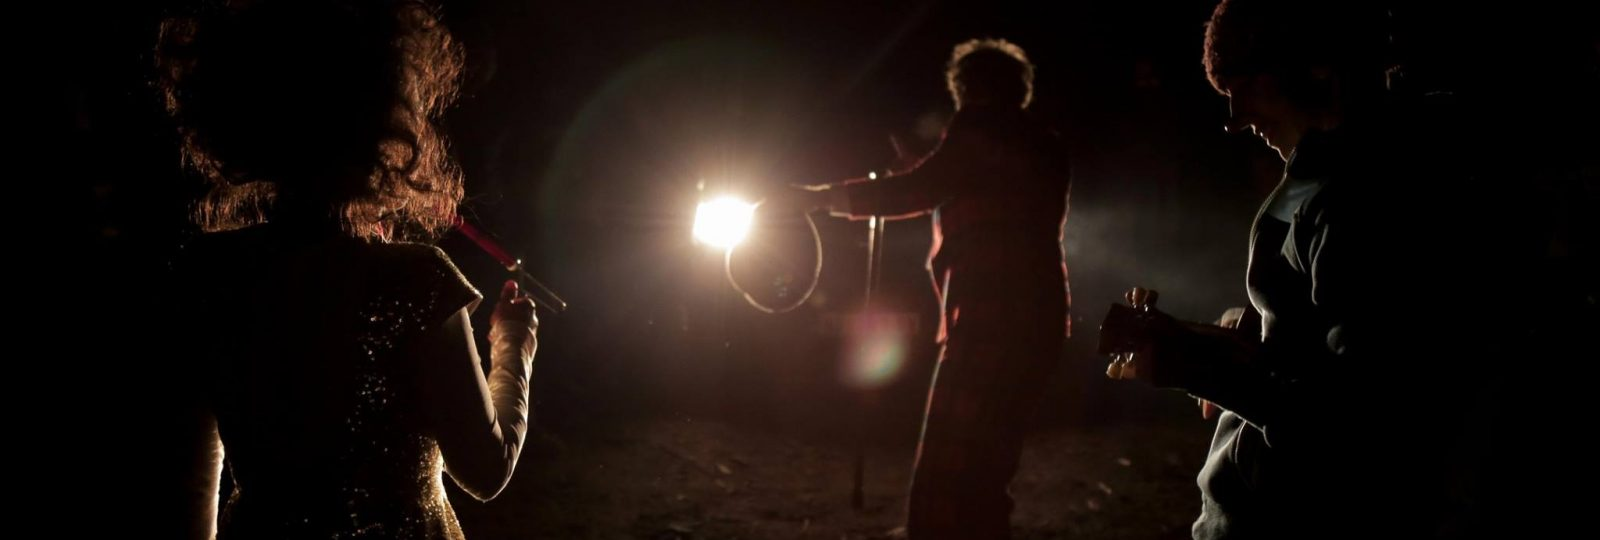 The clowns perform illuminated only by headlights